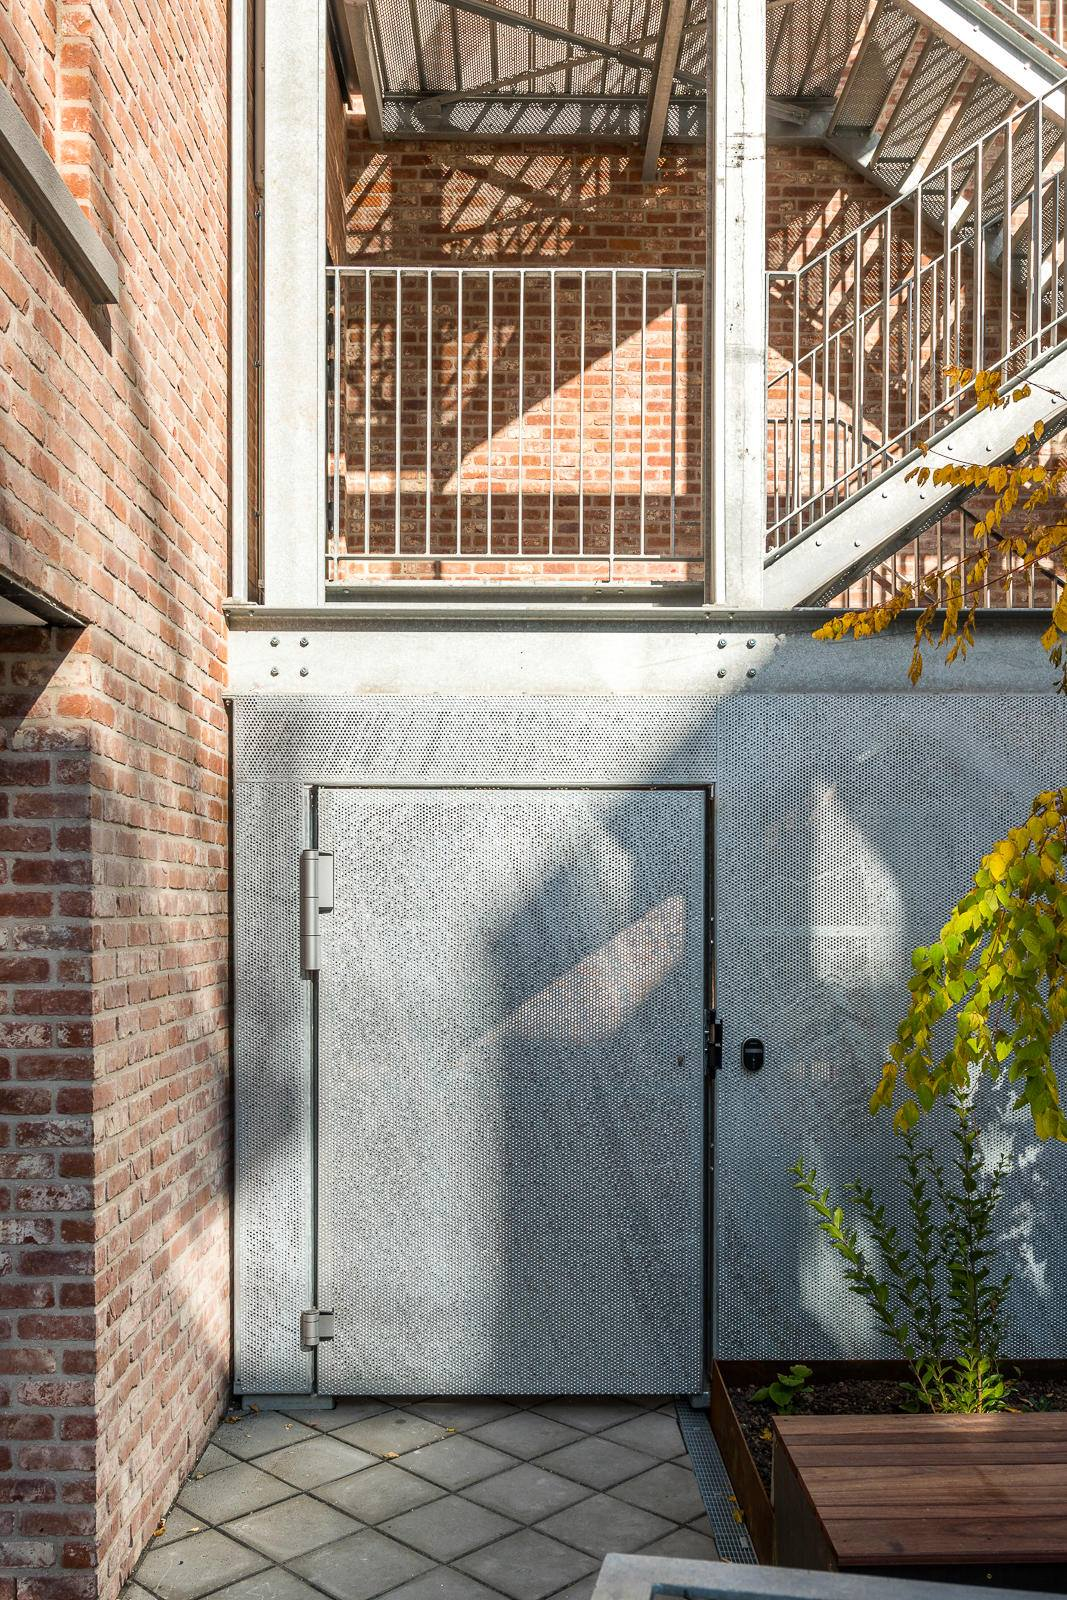 43629549 1900251216727881 7626273771933925376 o | Baeyens & Beck architecten Gent | architect nieuwbouw renovatie interieur | high end | architectenbureau